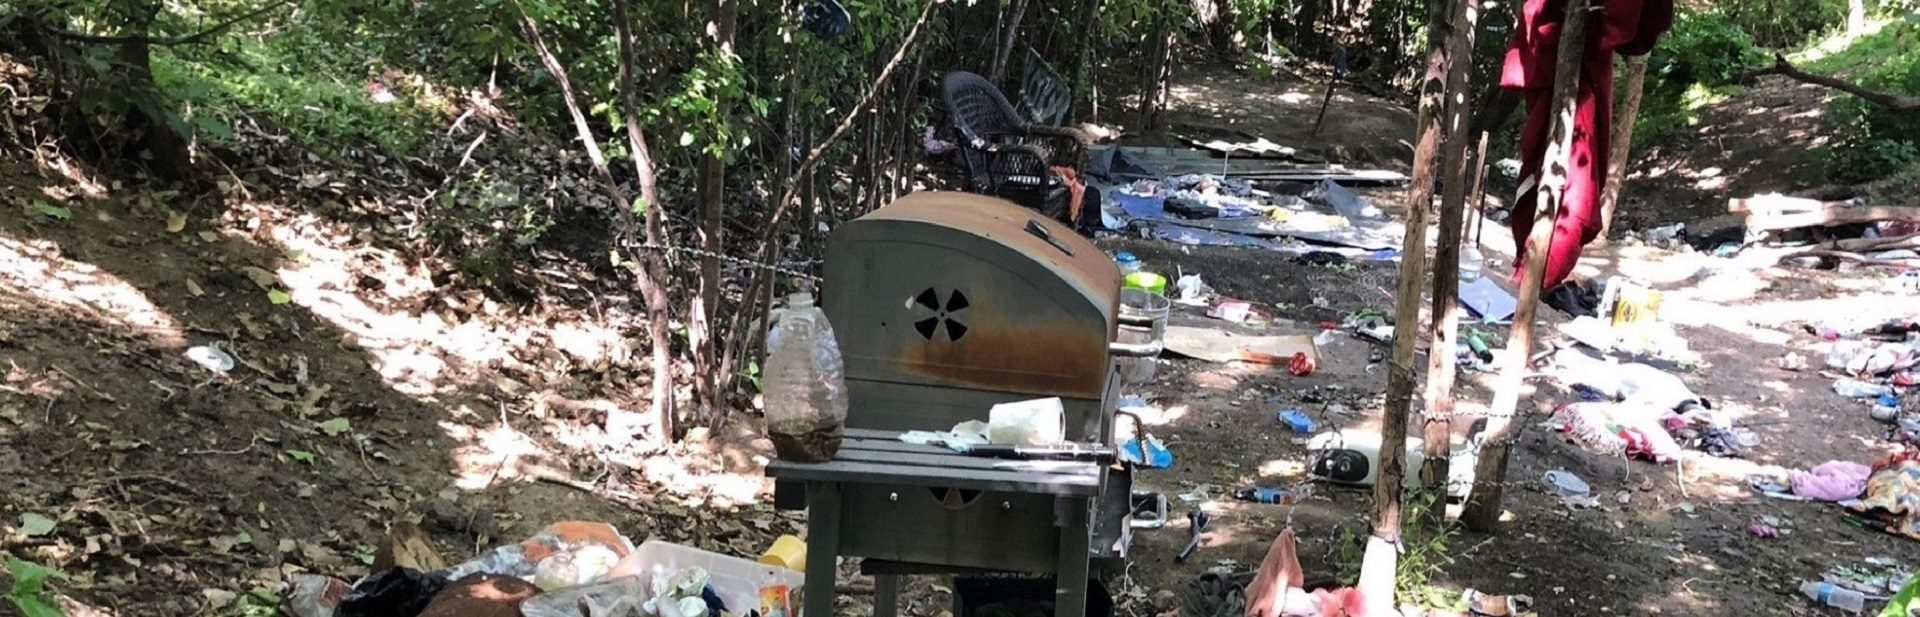 Homeless Camp Cleanup